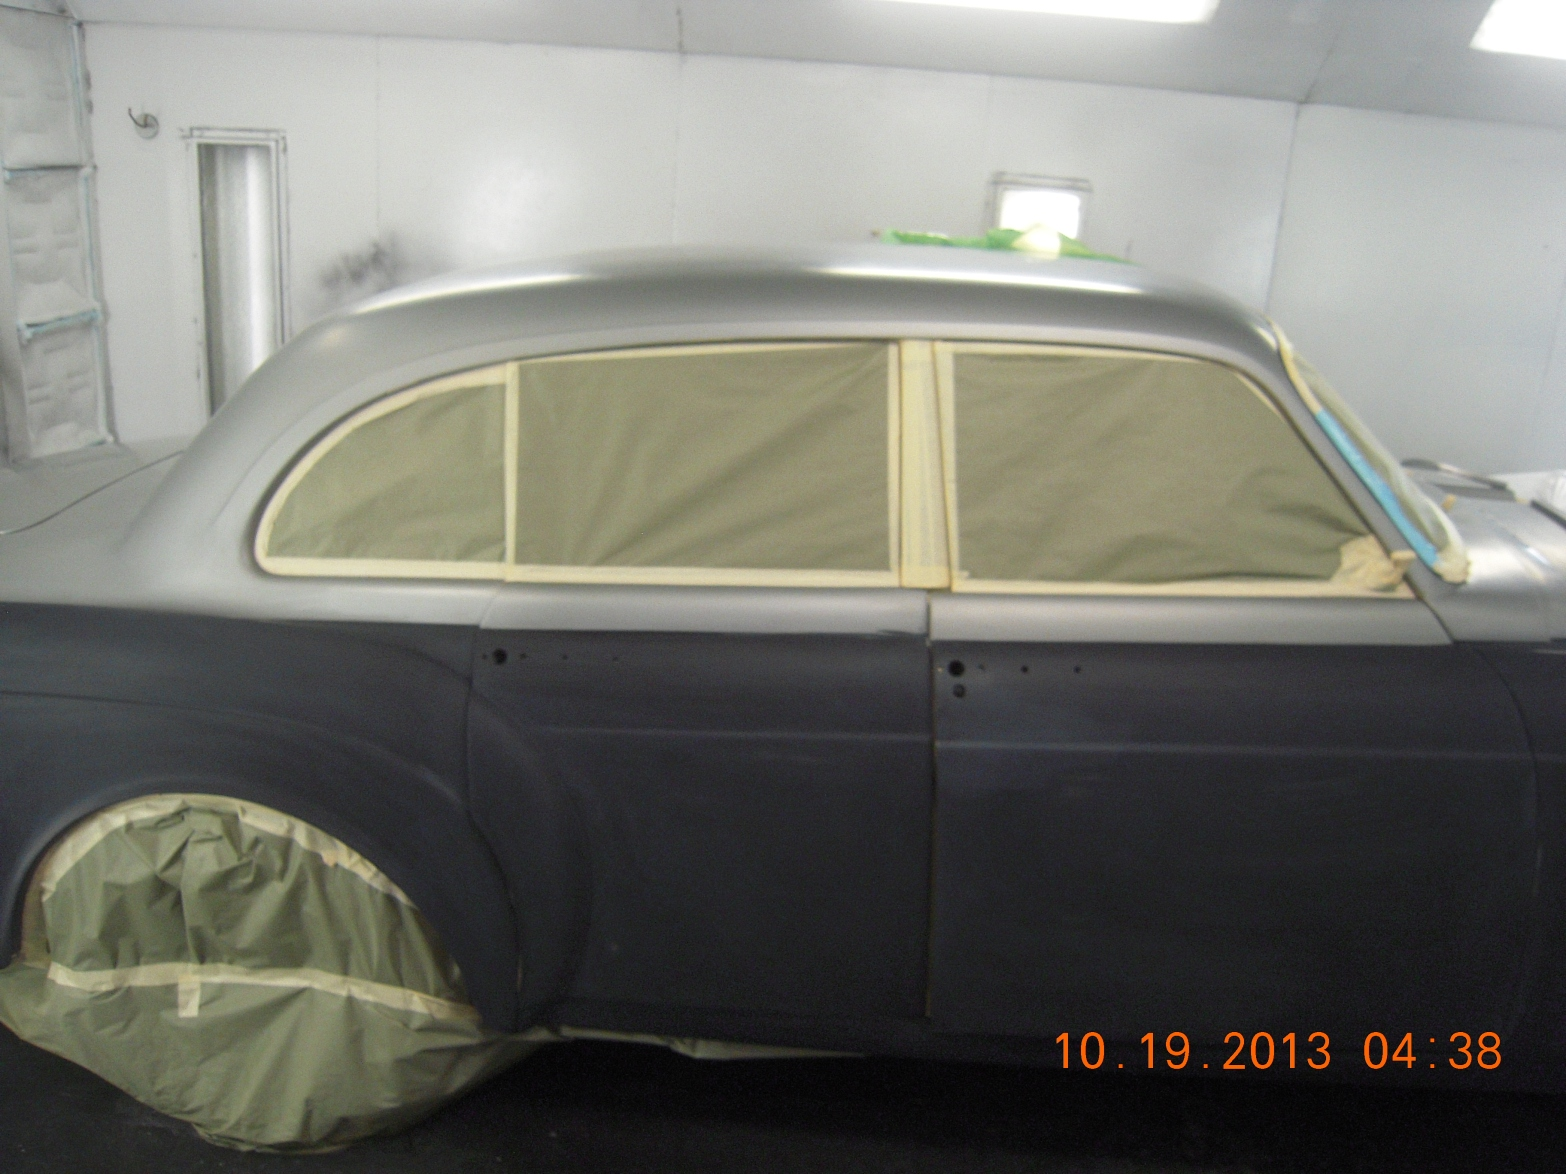 west-coast-body-and-paint-1953-bentley-continental-flying-spur-109